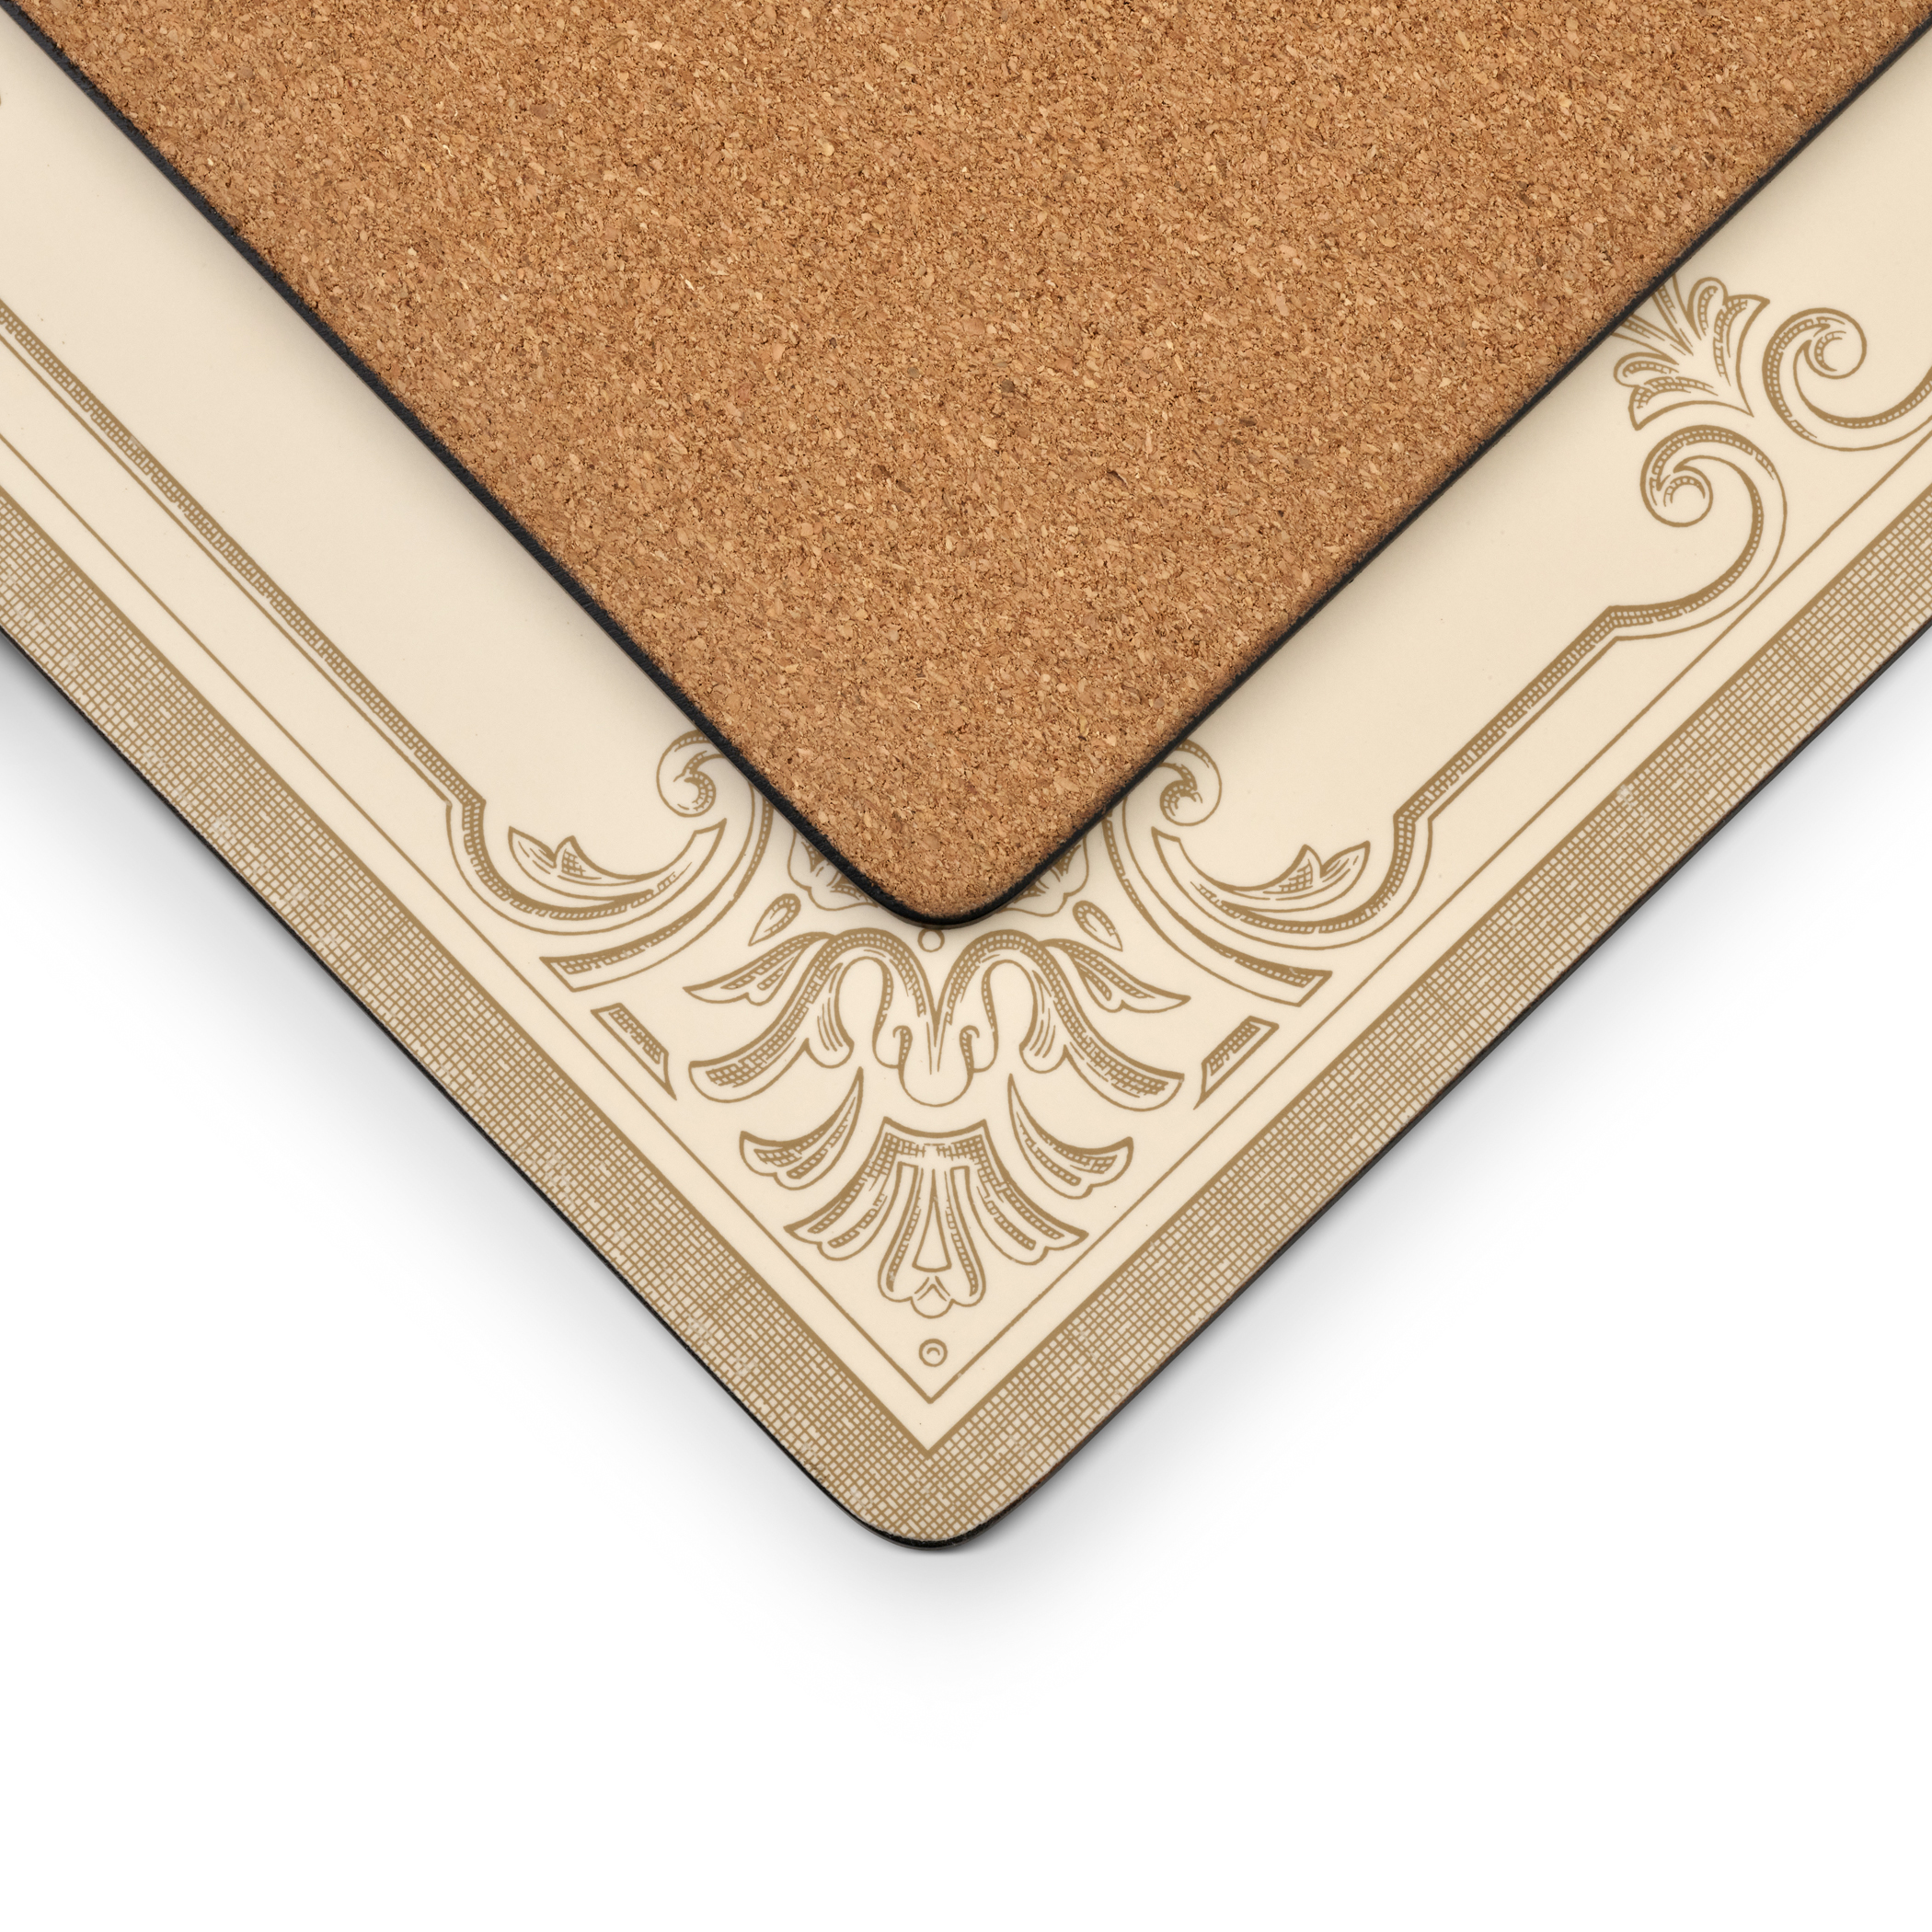 Pimpernel FDC-Fleur de Lys Taupe/Gold Placemats Set of 4 image number 2